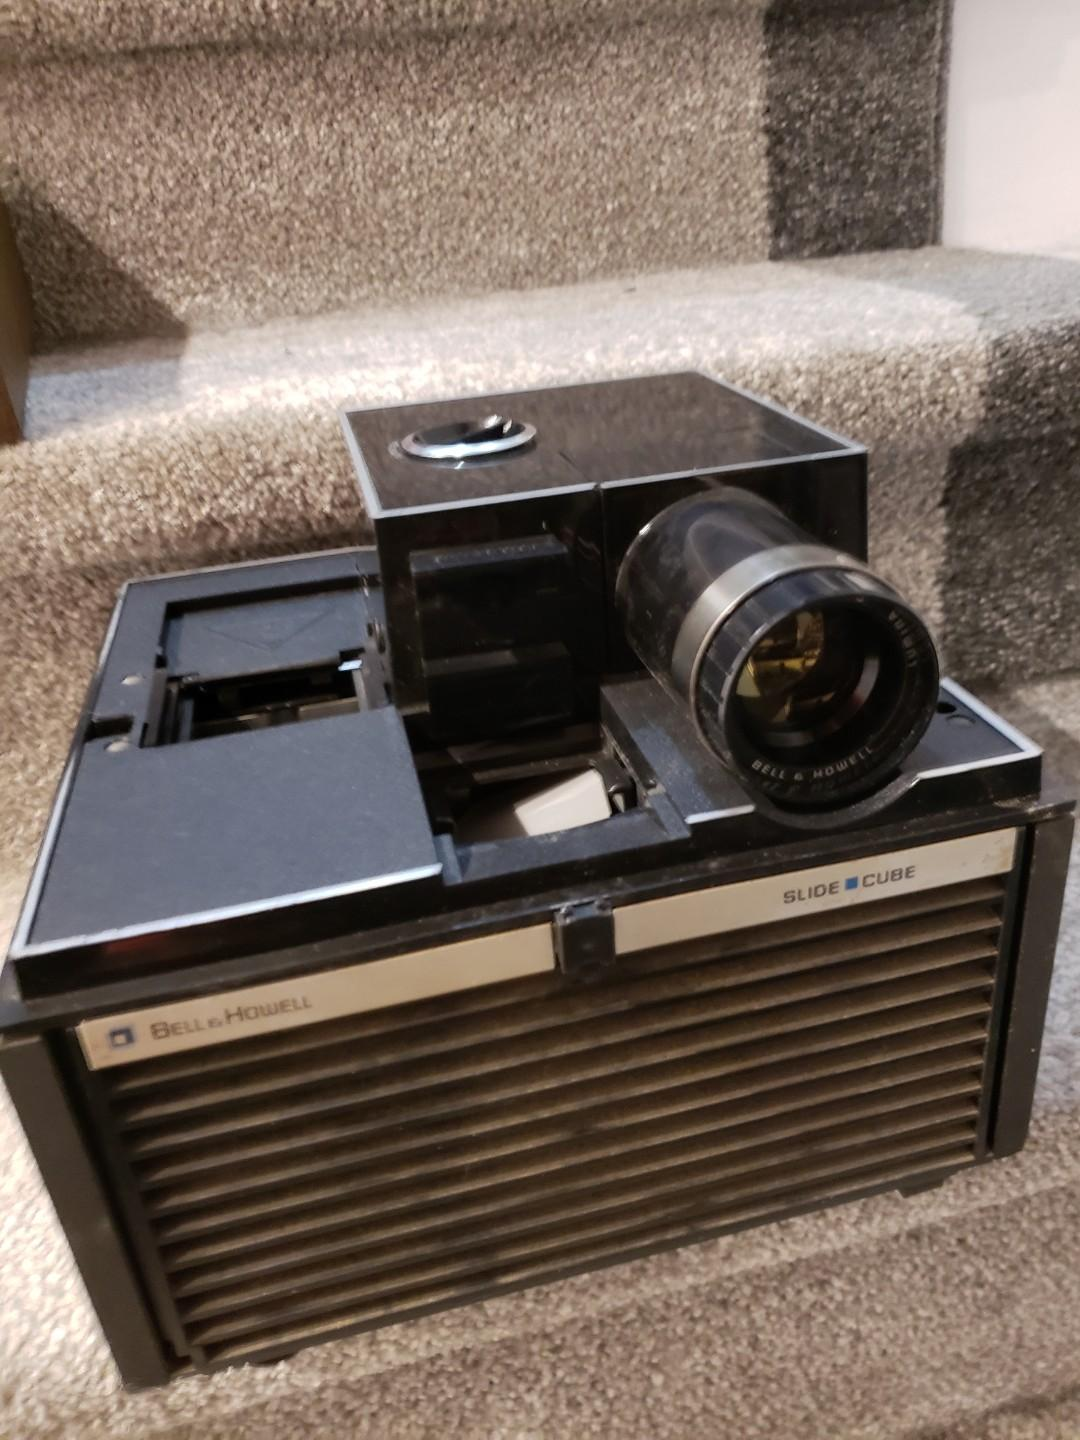 Ben and Howell Slide Projector